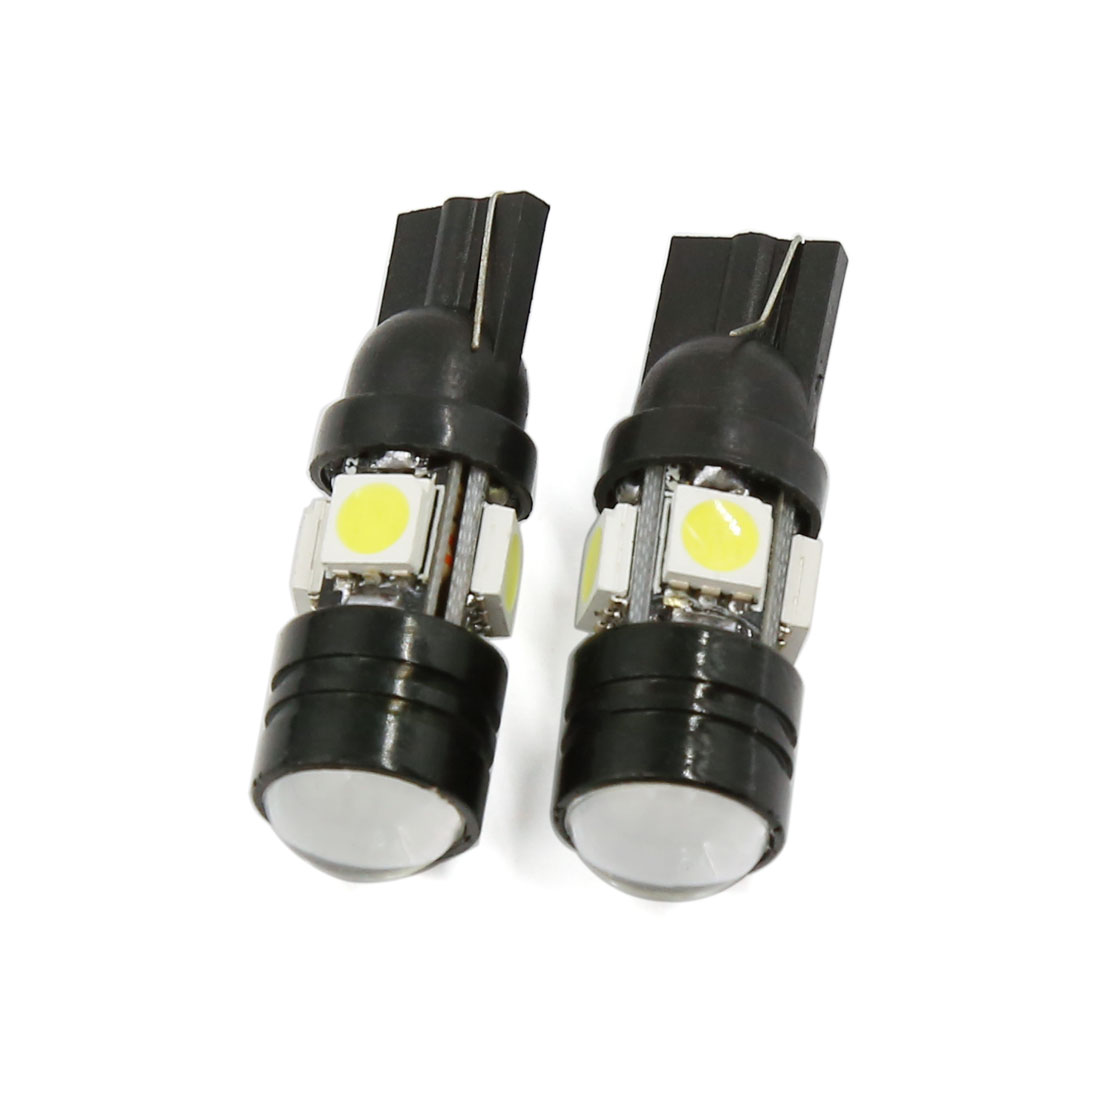 Car T10 W5W Projector Lens Bulb White 4 SMD 1 COB LED Wedge Lamp 2pcs Interior